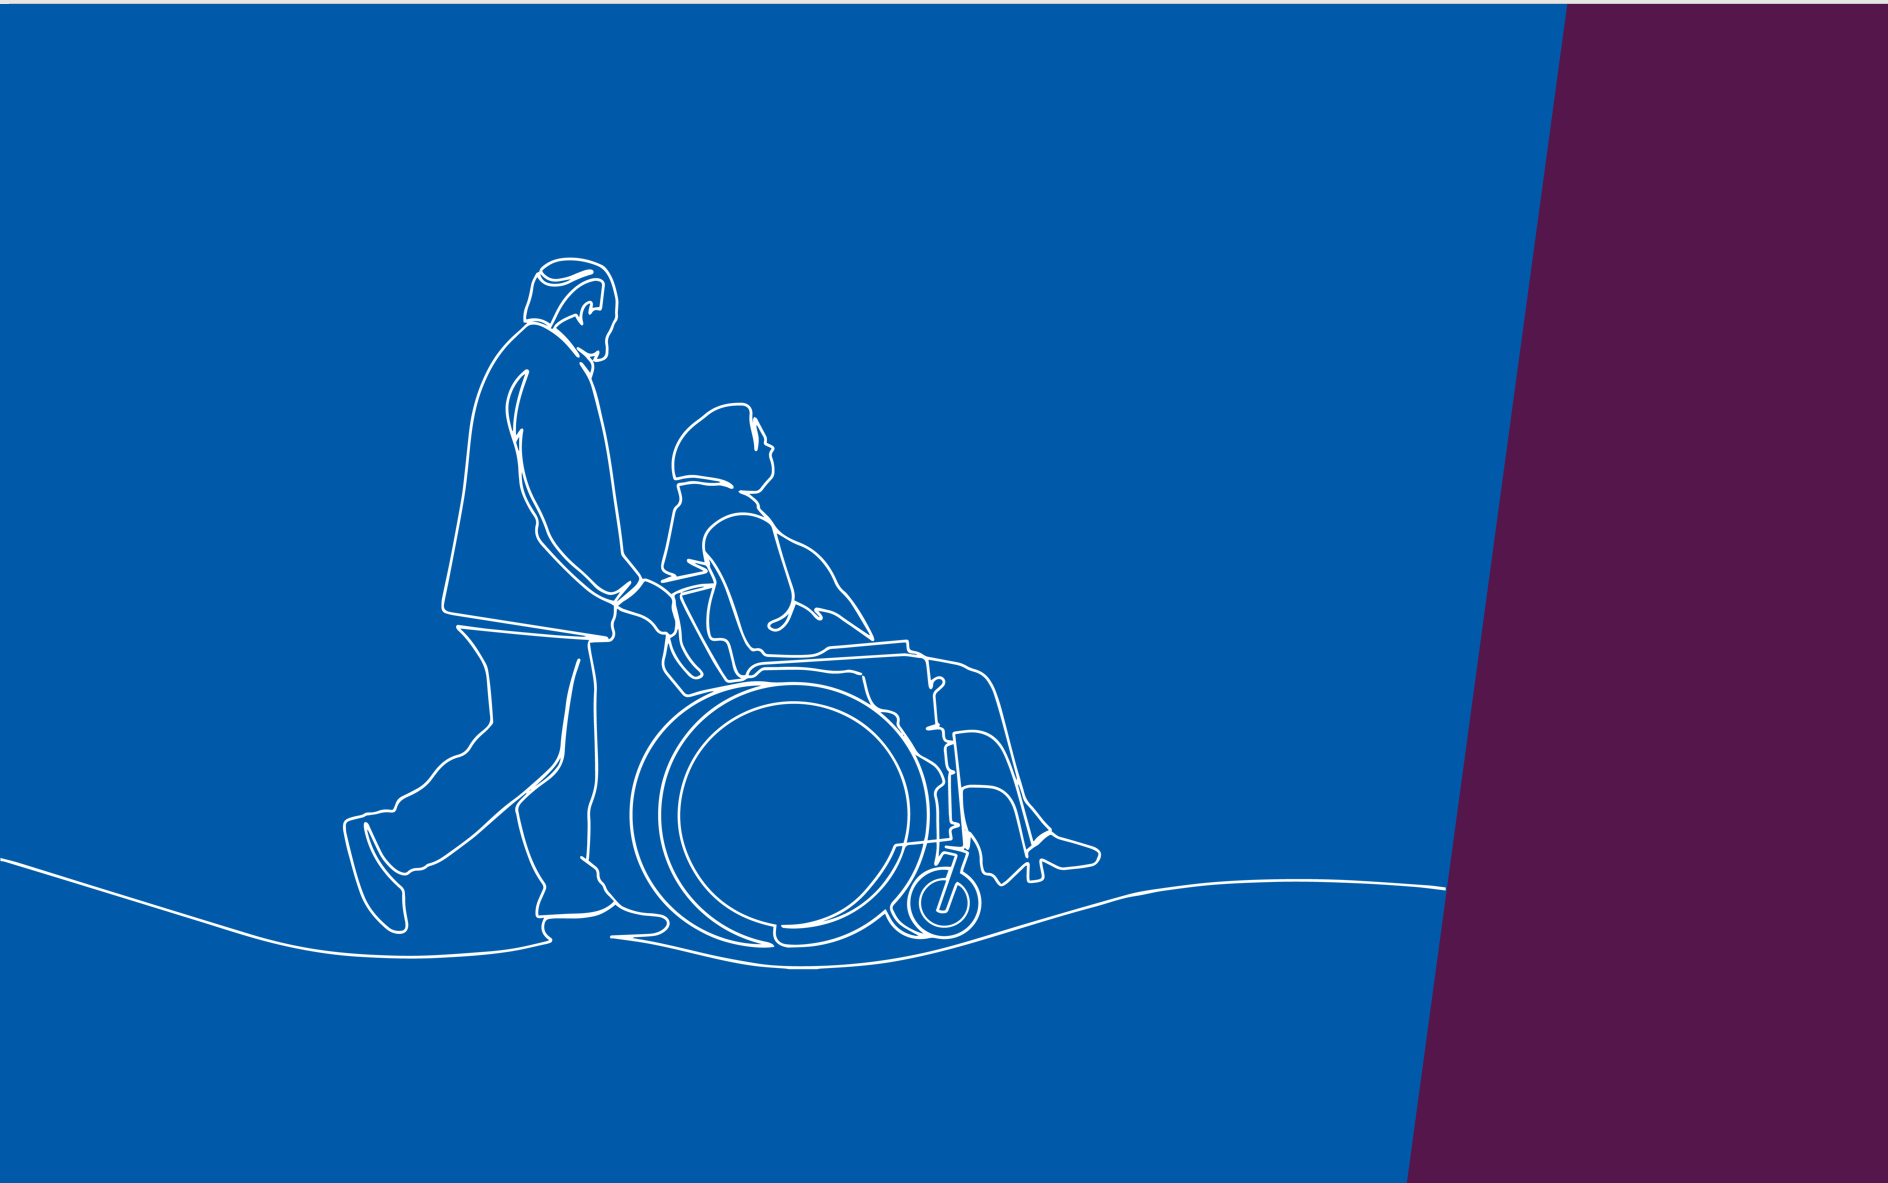 silhouettes of two seniors sitting on a blue and purple background with NIA and Wellesley Institute logos